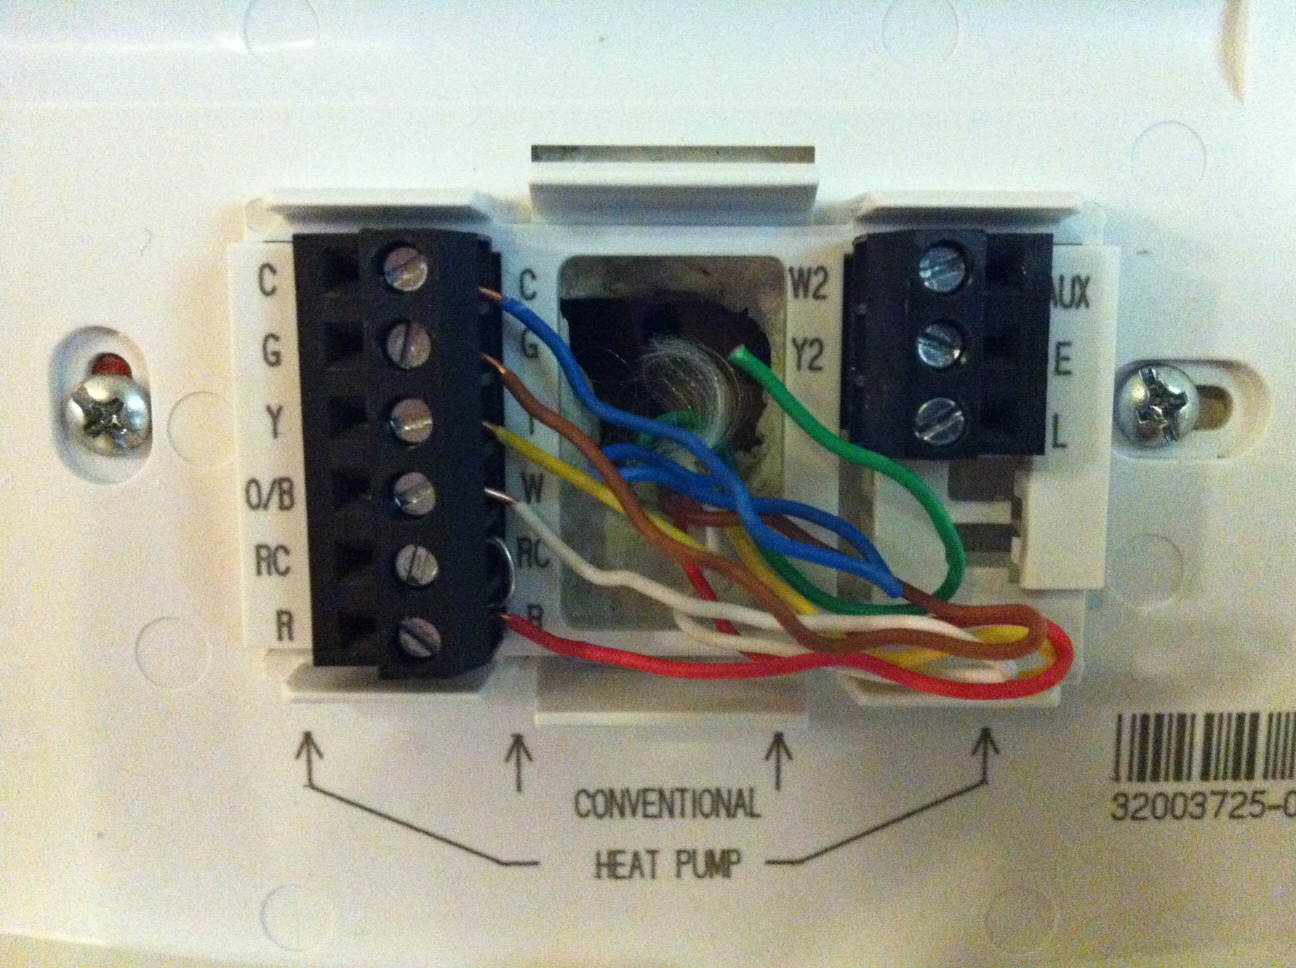 Rth7600d Wiring Diagram Wiring Color Standards Rth7600d Wiring Diagram